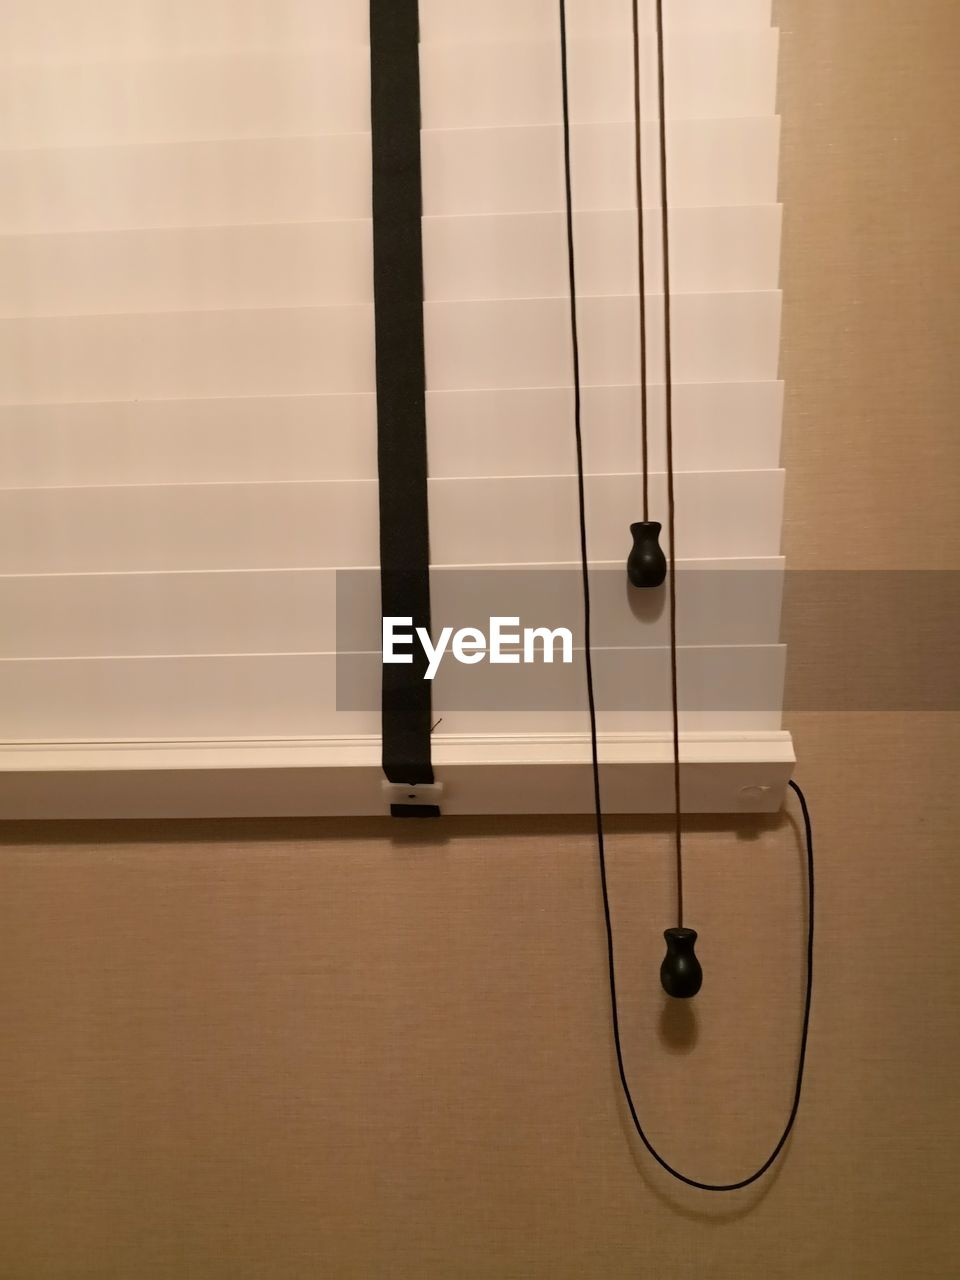 CLOSE-UP OF ELECTRIC LAMP HANGING ON CEILING